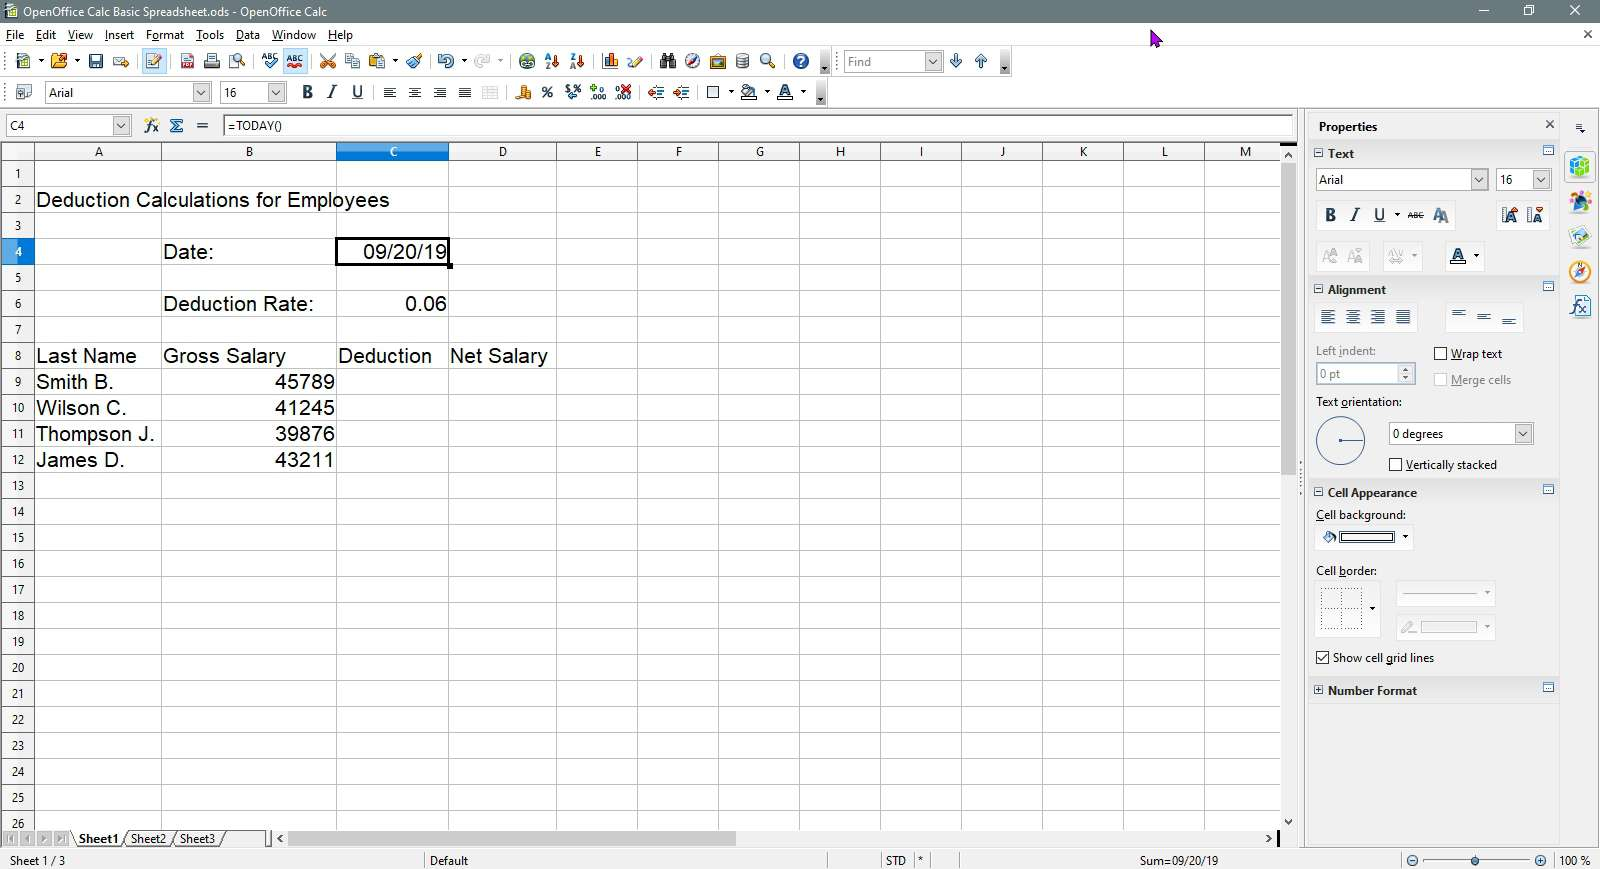 The results of the Today formula in OpenOffice Calc.